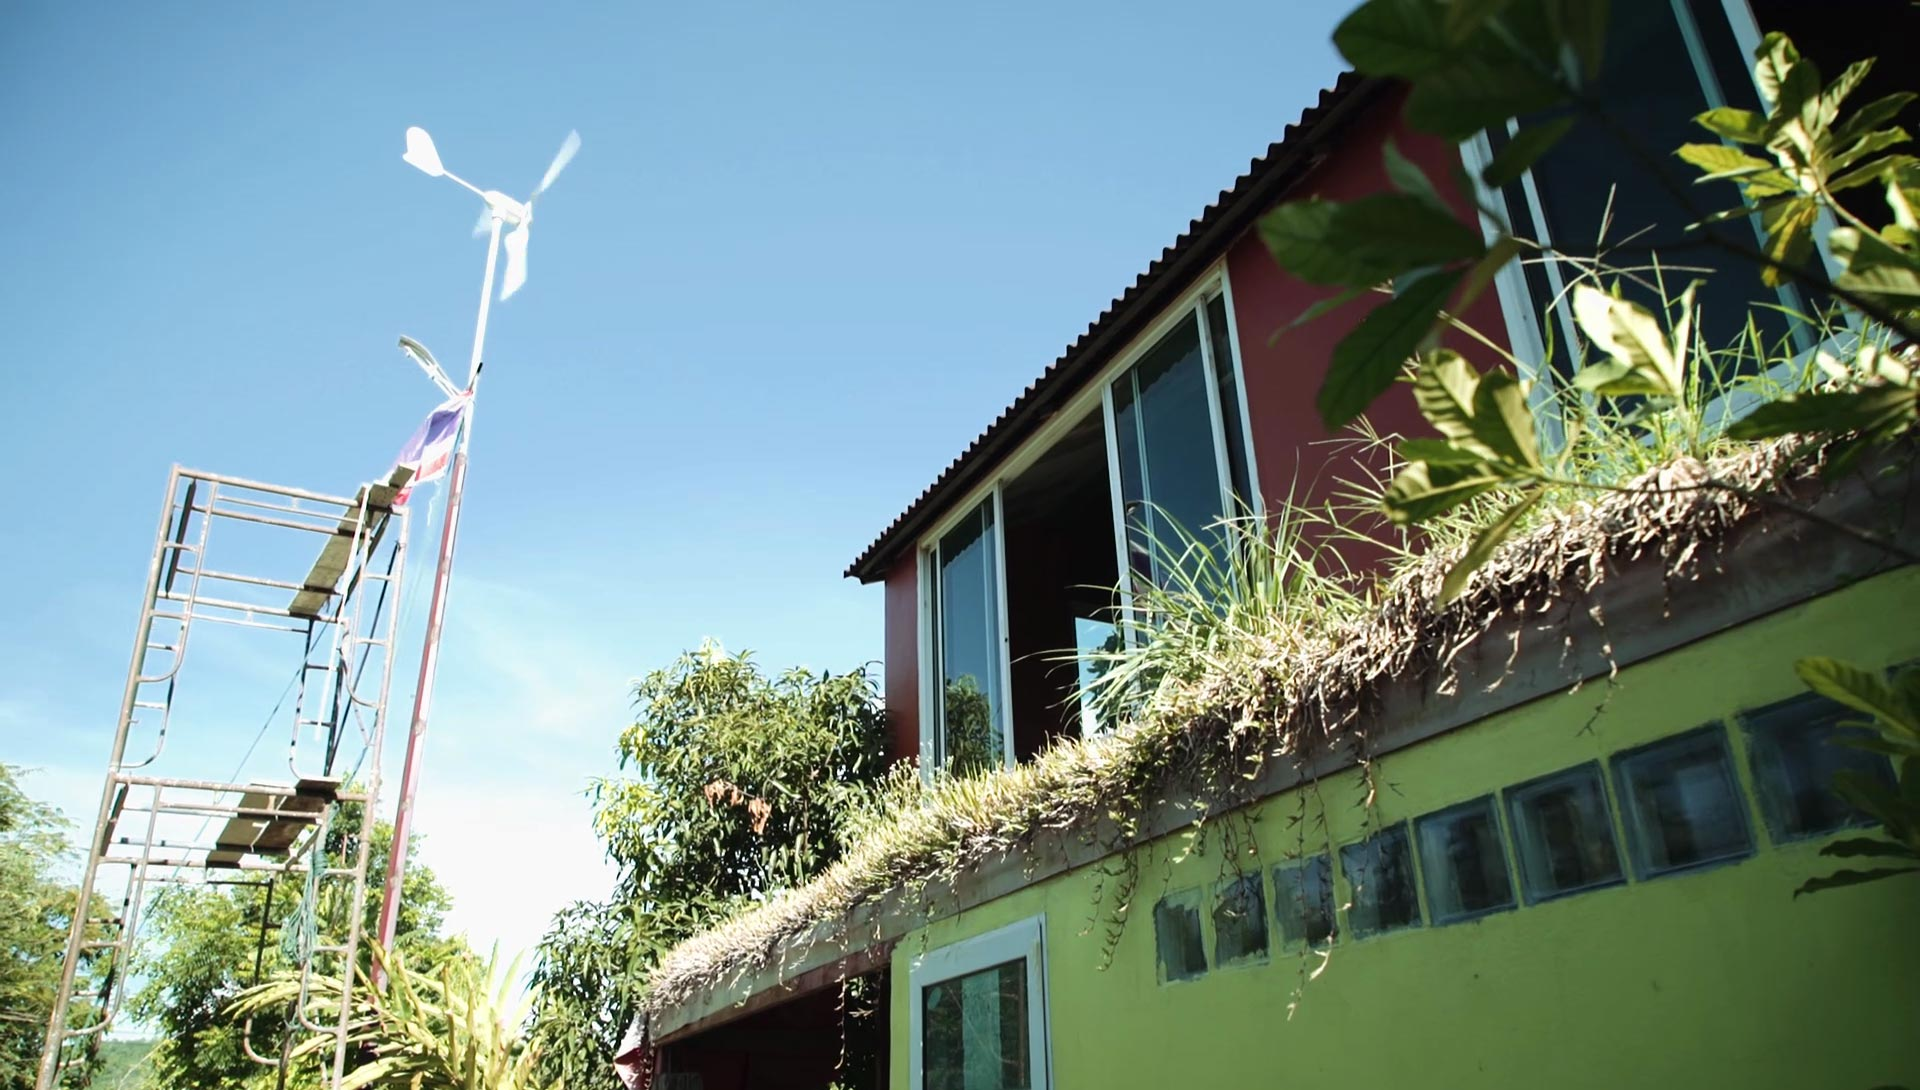 Completely self-sufficient here at Daruma ecovillage on wind-power alone! ;-)